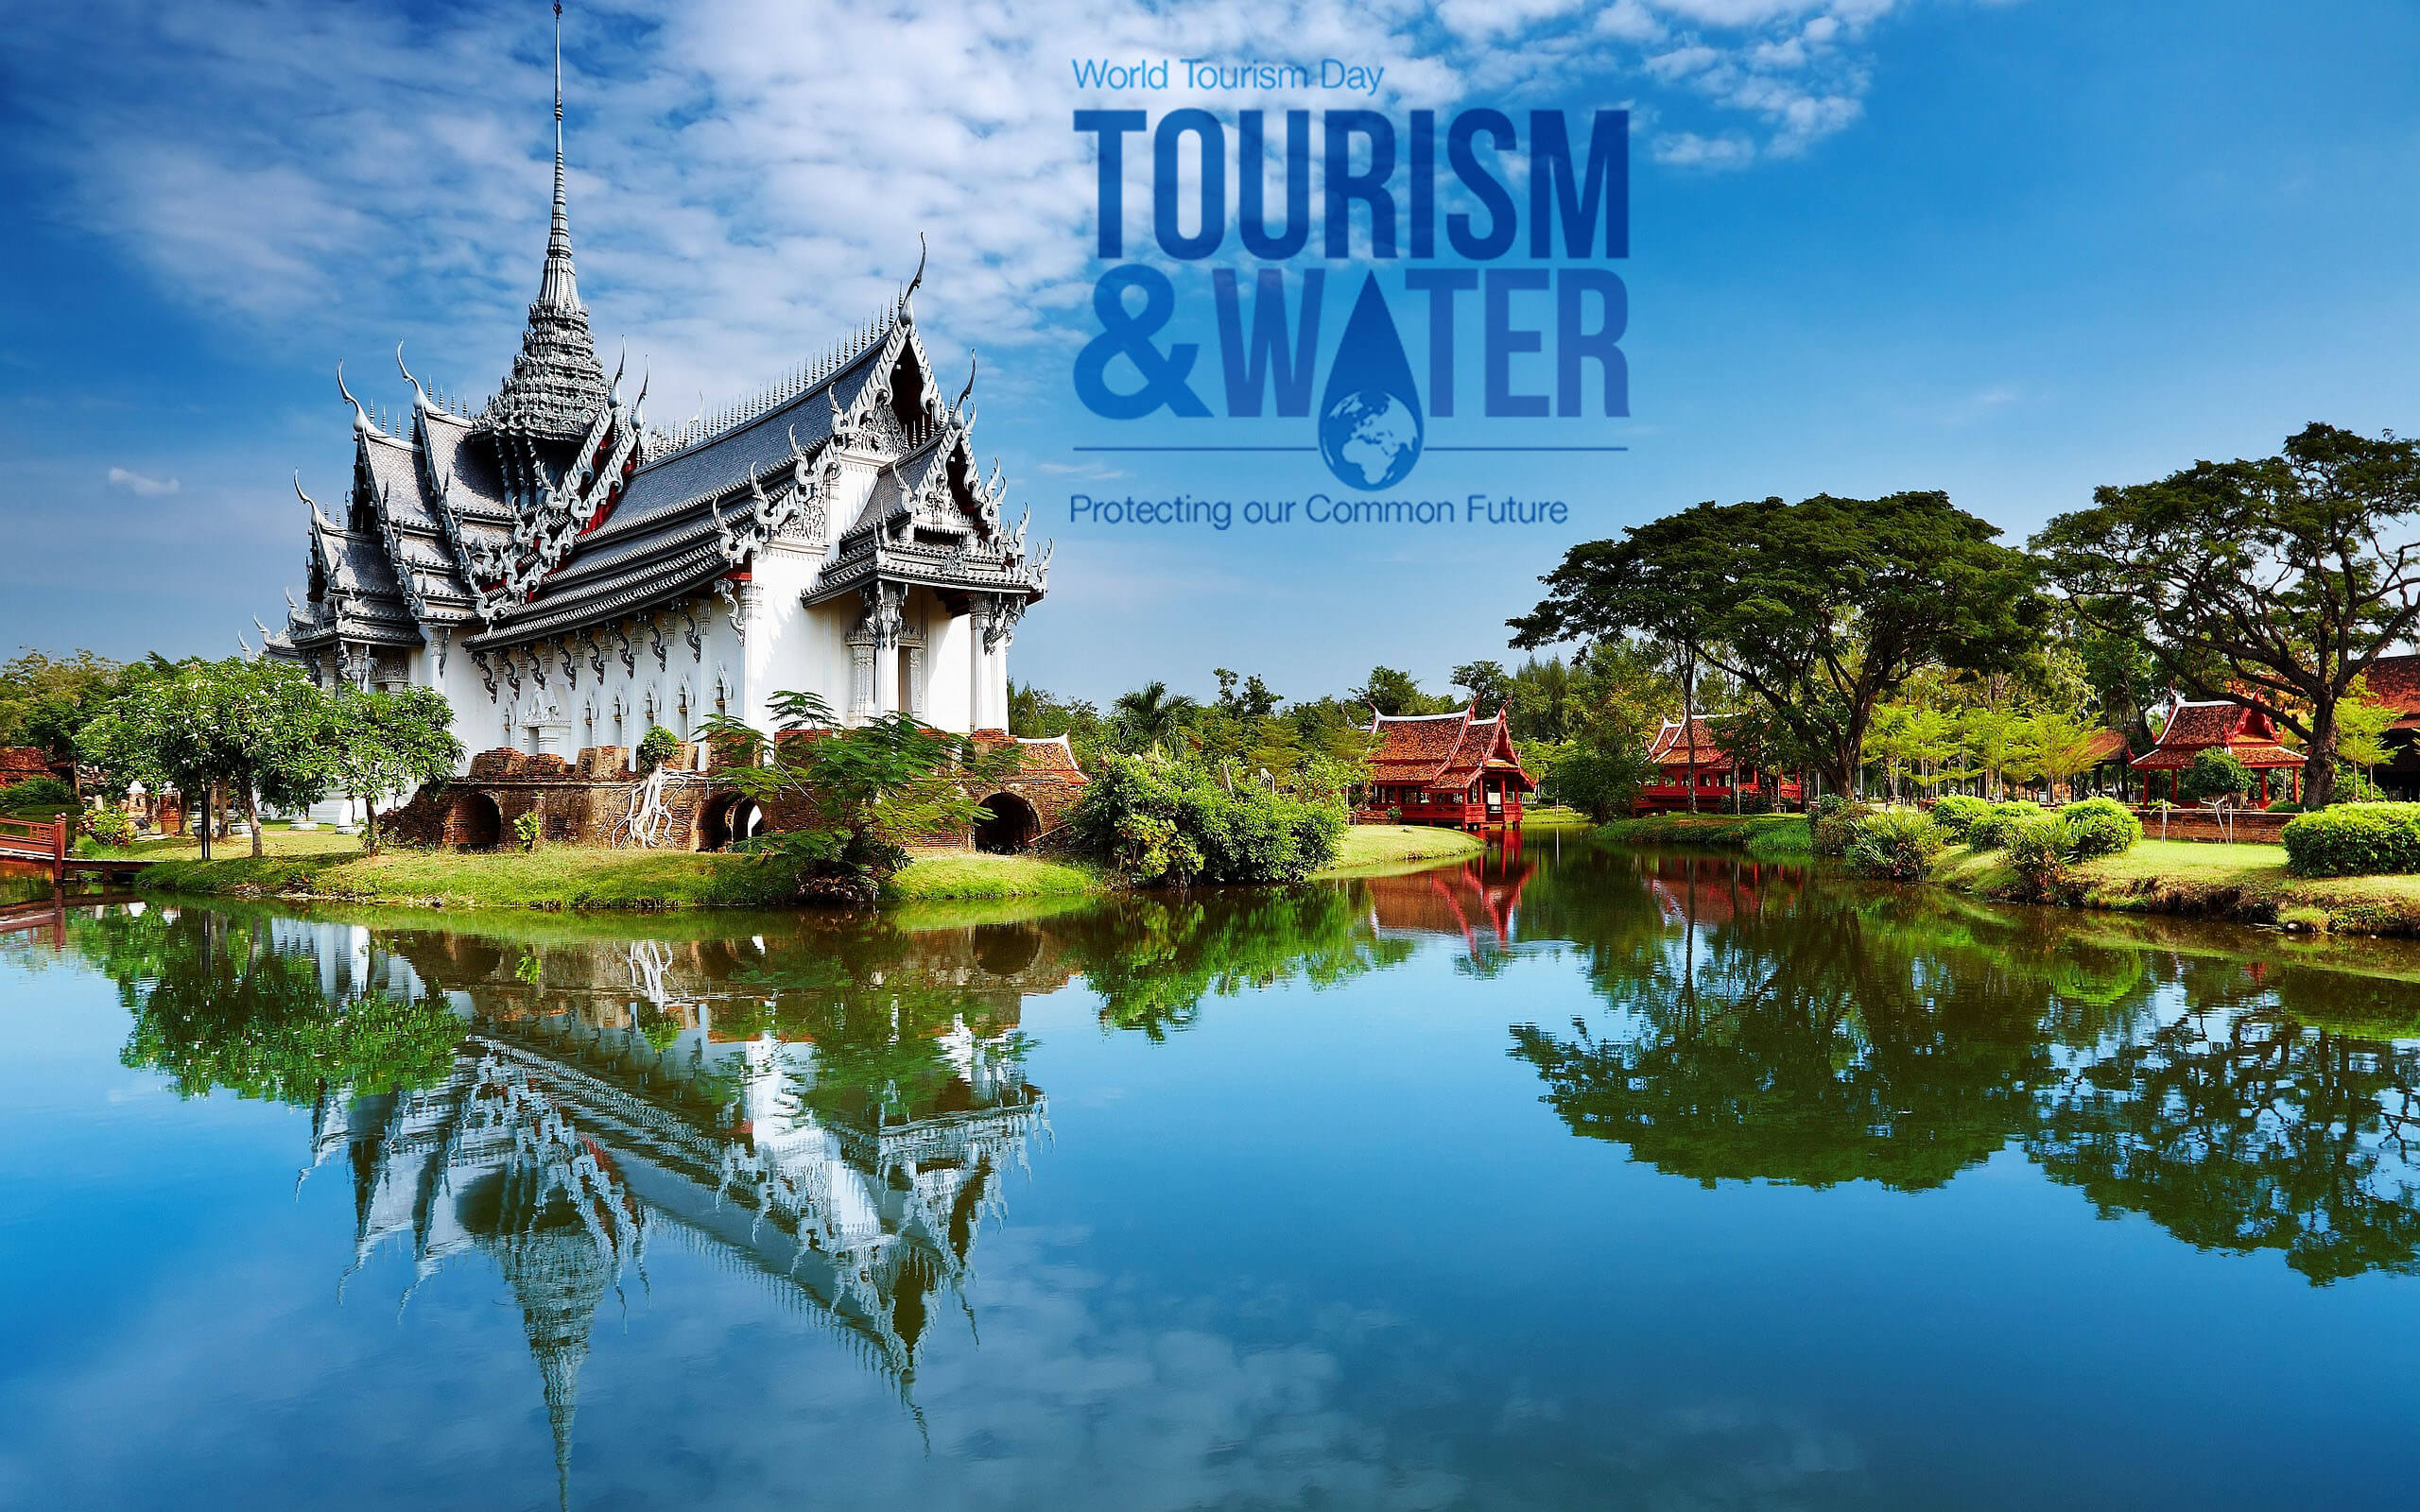 world tourism day asia pacific hd wallpaper